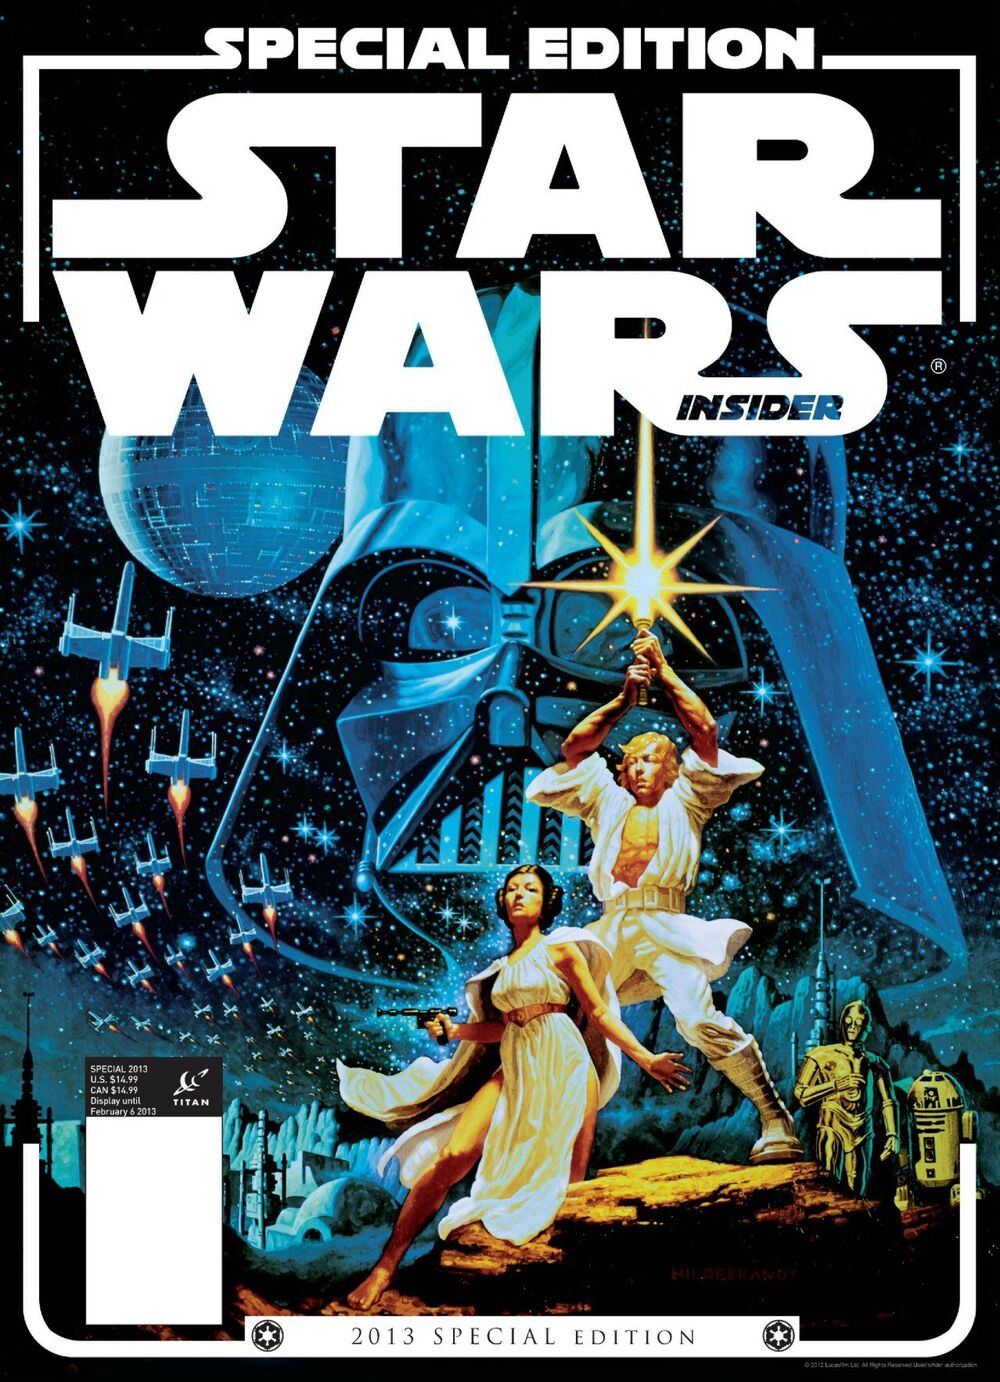 Star Wars Insider Special Edition 2013